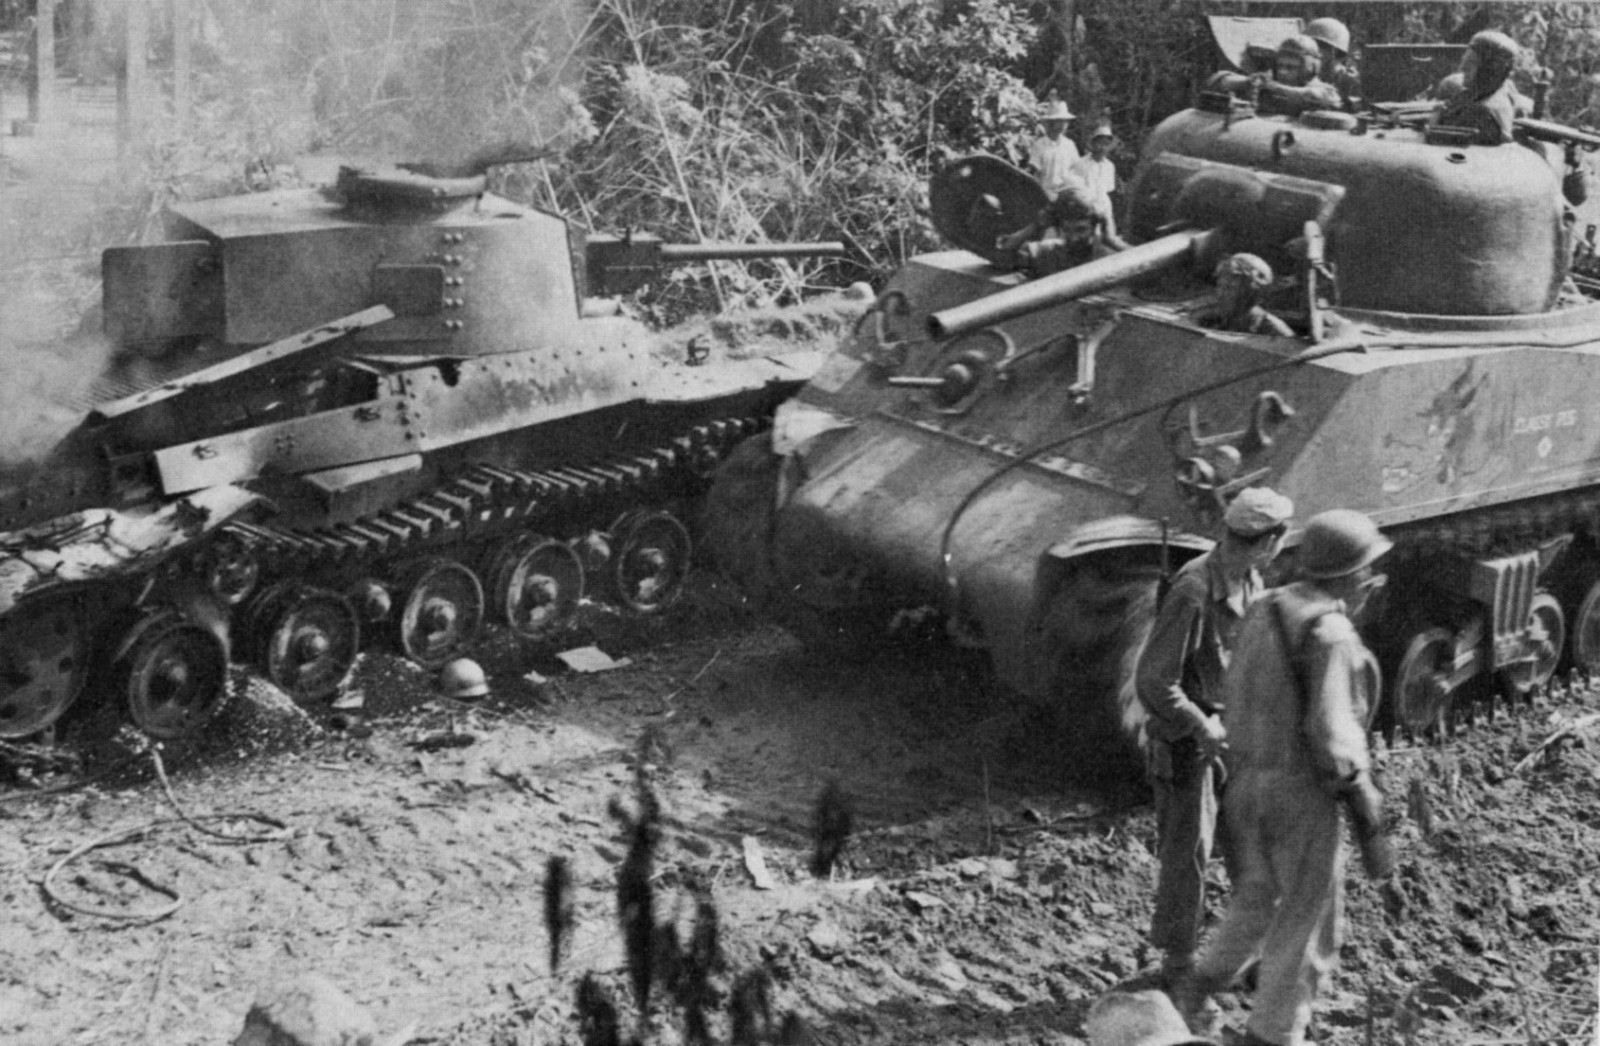 Classy-Peg-passing-destroyed-Japanese-Shinhoto-Chiha-tank-on-Luzon-in-the-Phillipines-17-Jan-1945